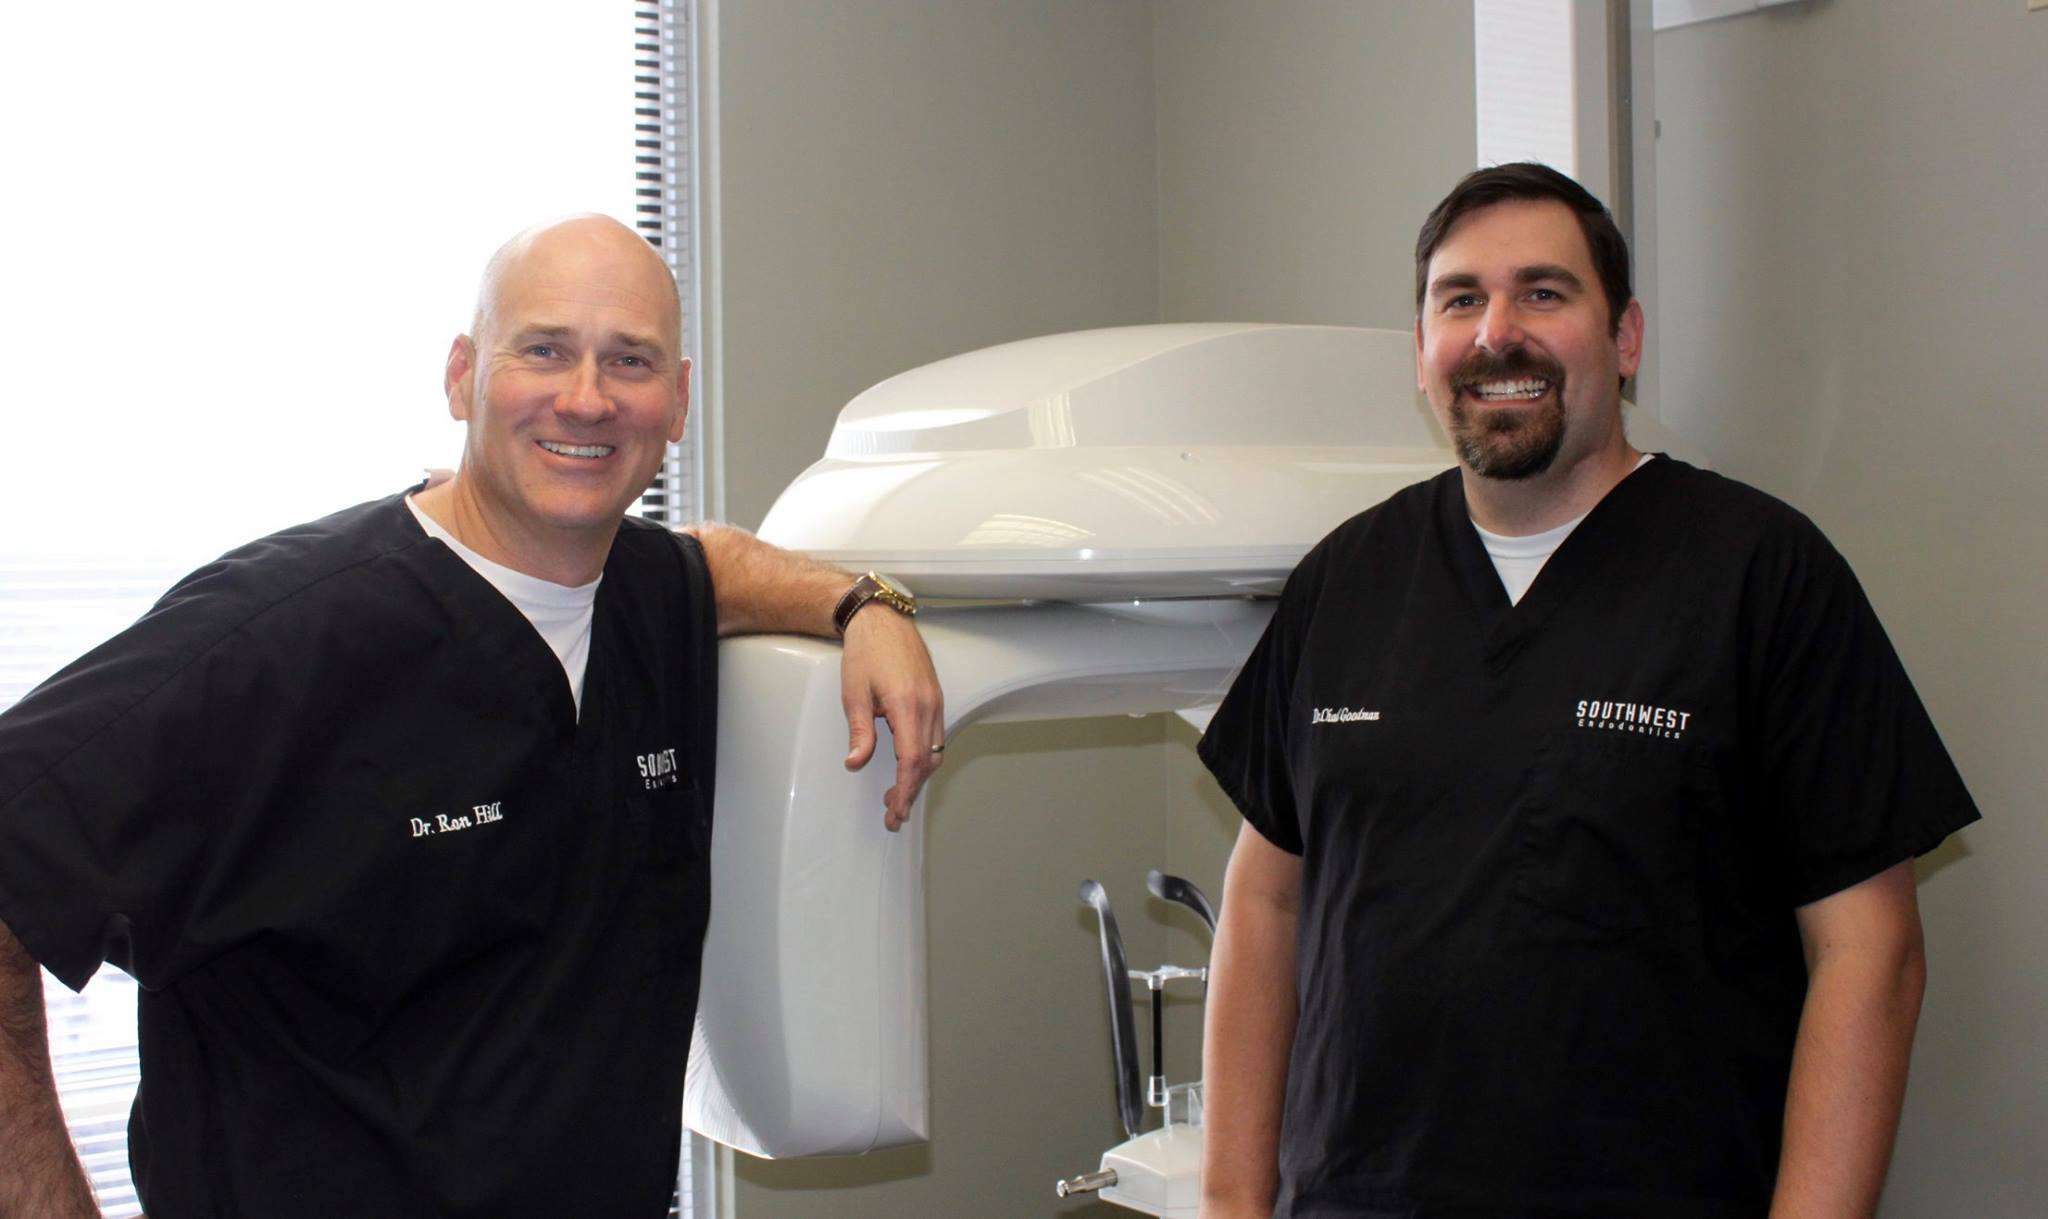 Southwest Endodontics Announces A GentleWave Continuing Education (CE) Course for Houston Area Dentists